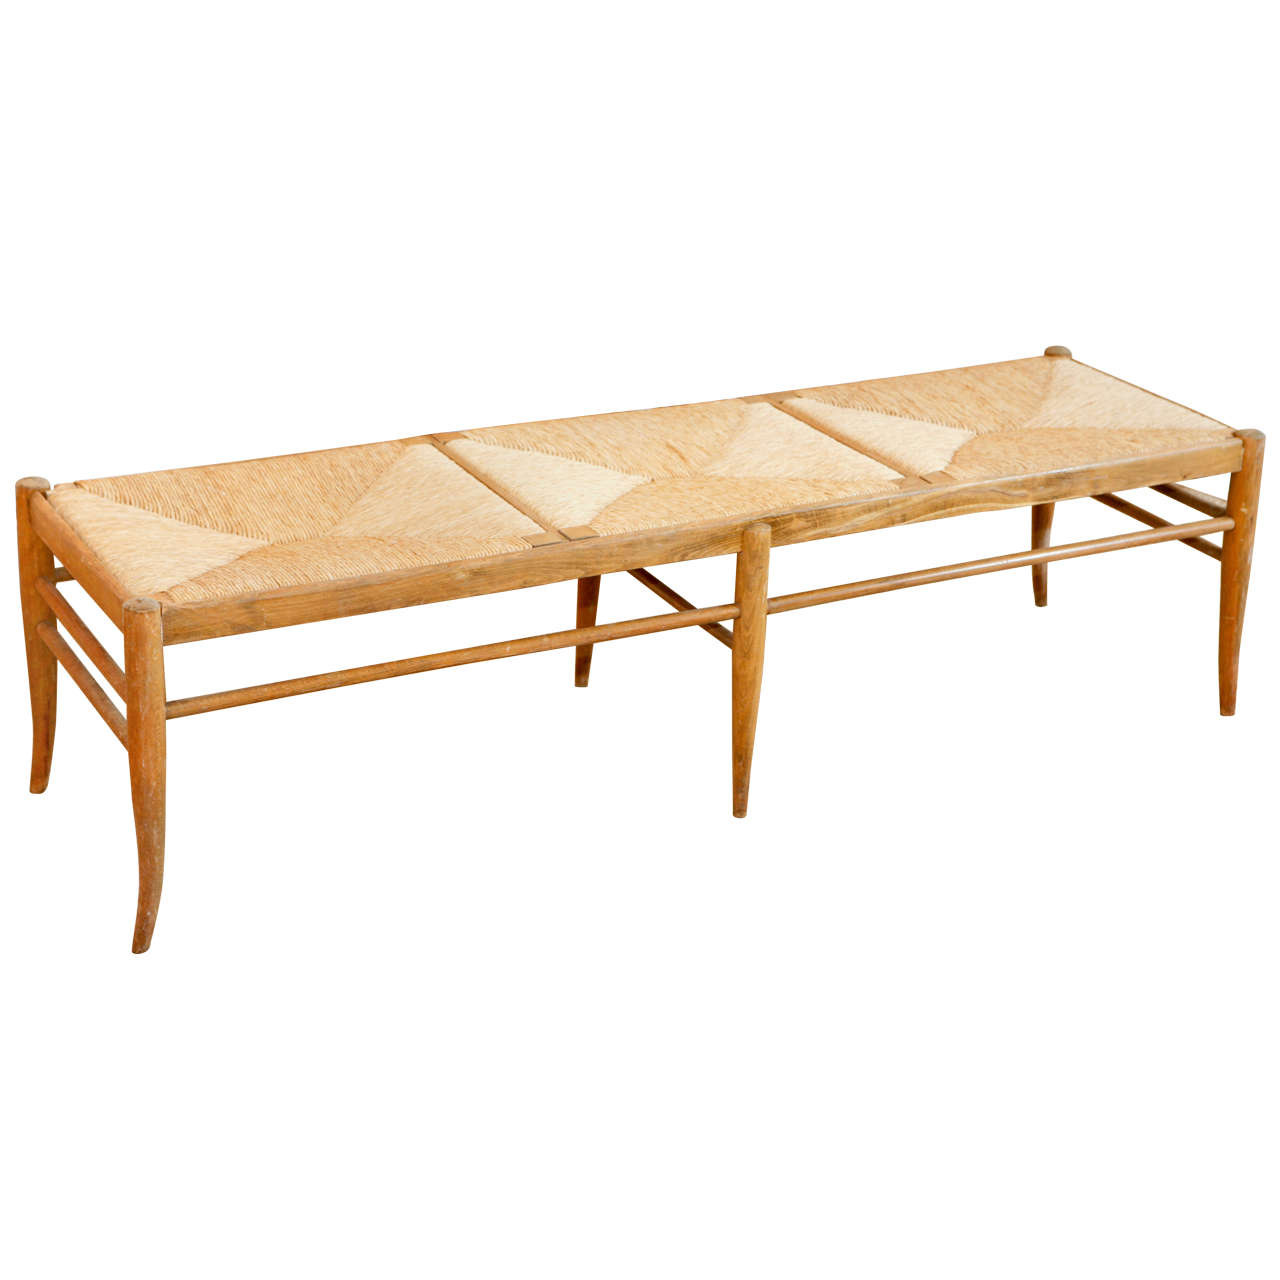 Italian Wood And Rush Seat Bench At 1stdibs